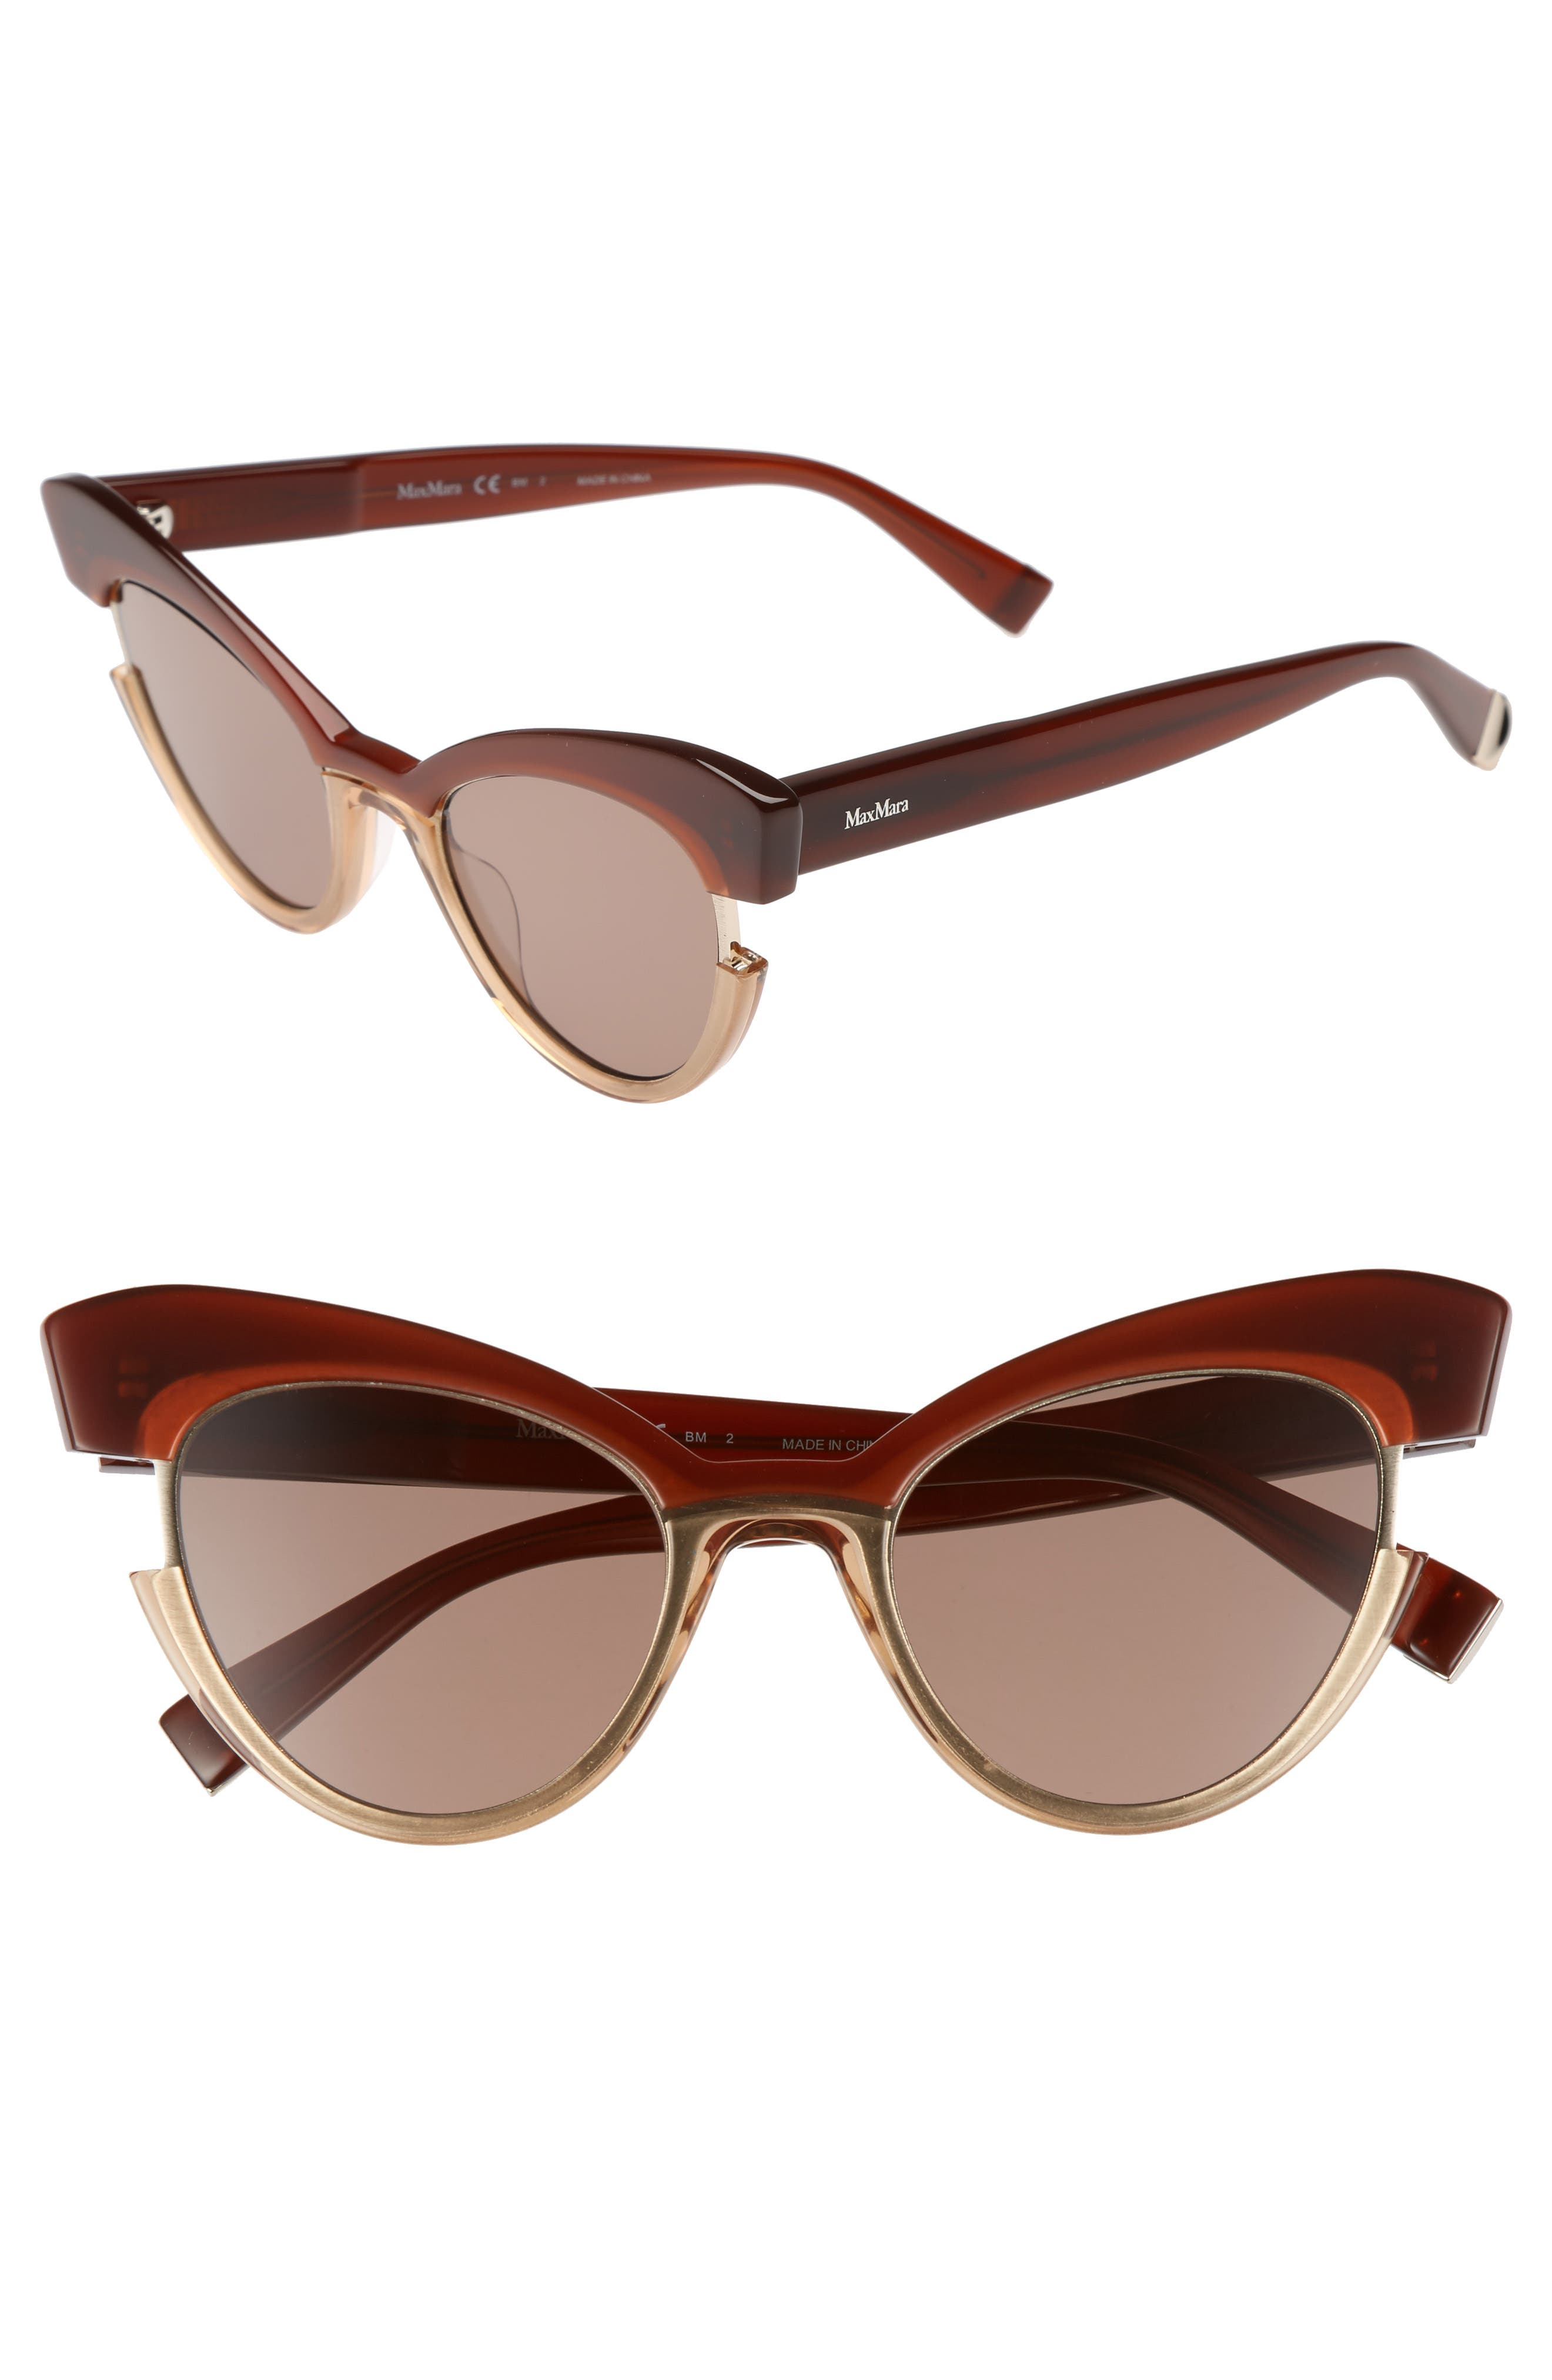 Main Image - Max Mara 49mm Gradient Lens Cat Eye Sunglasses